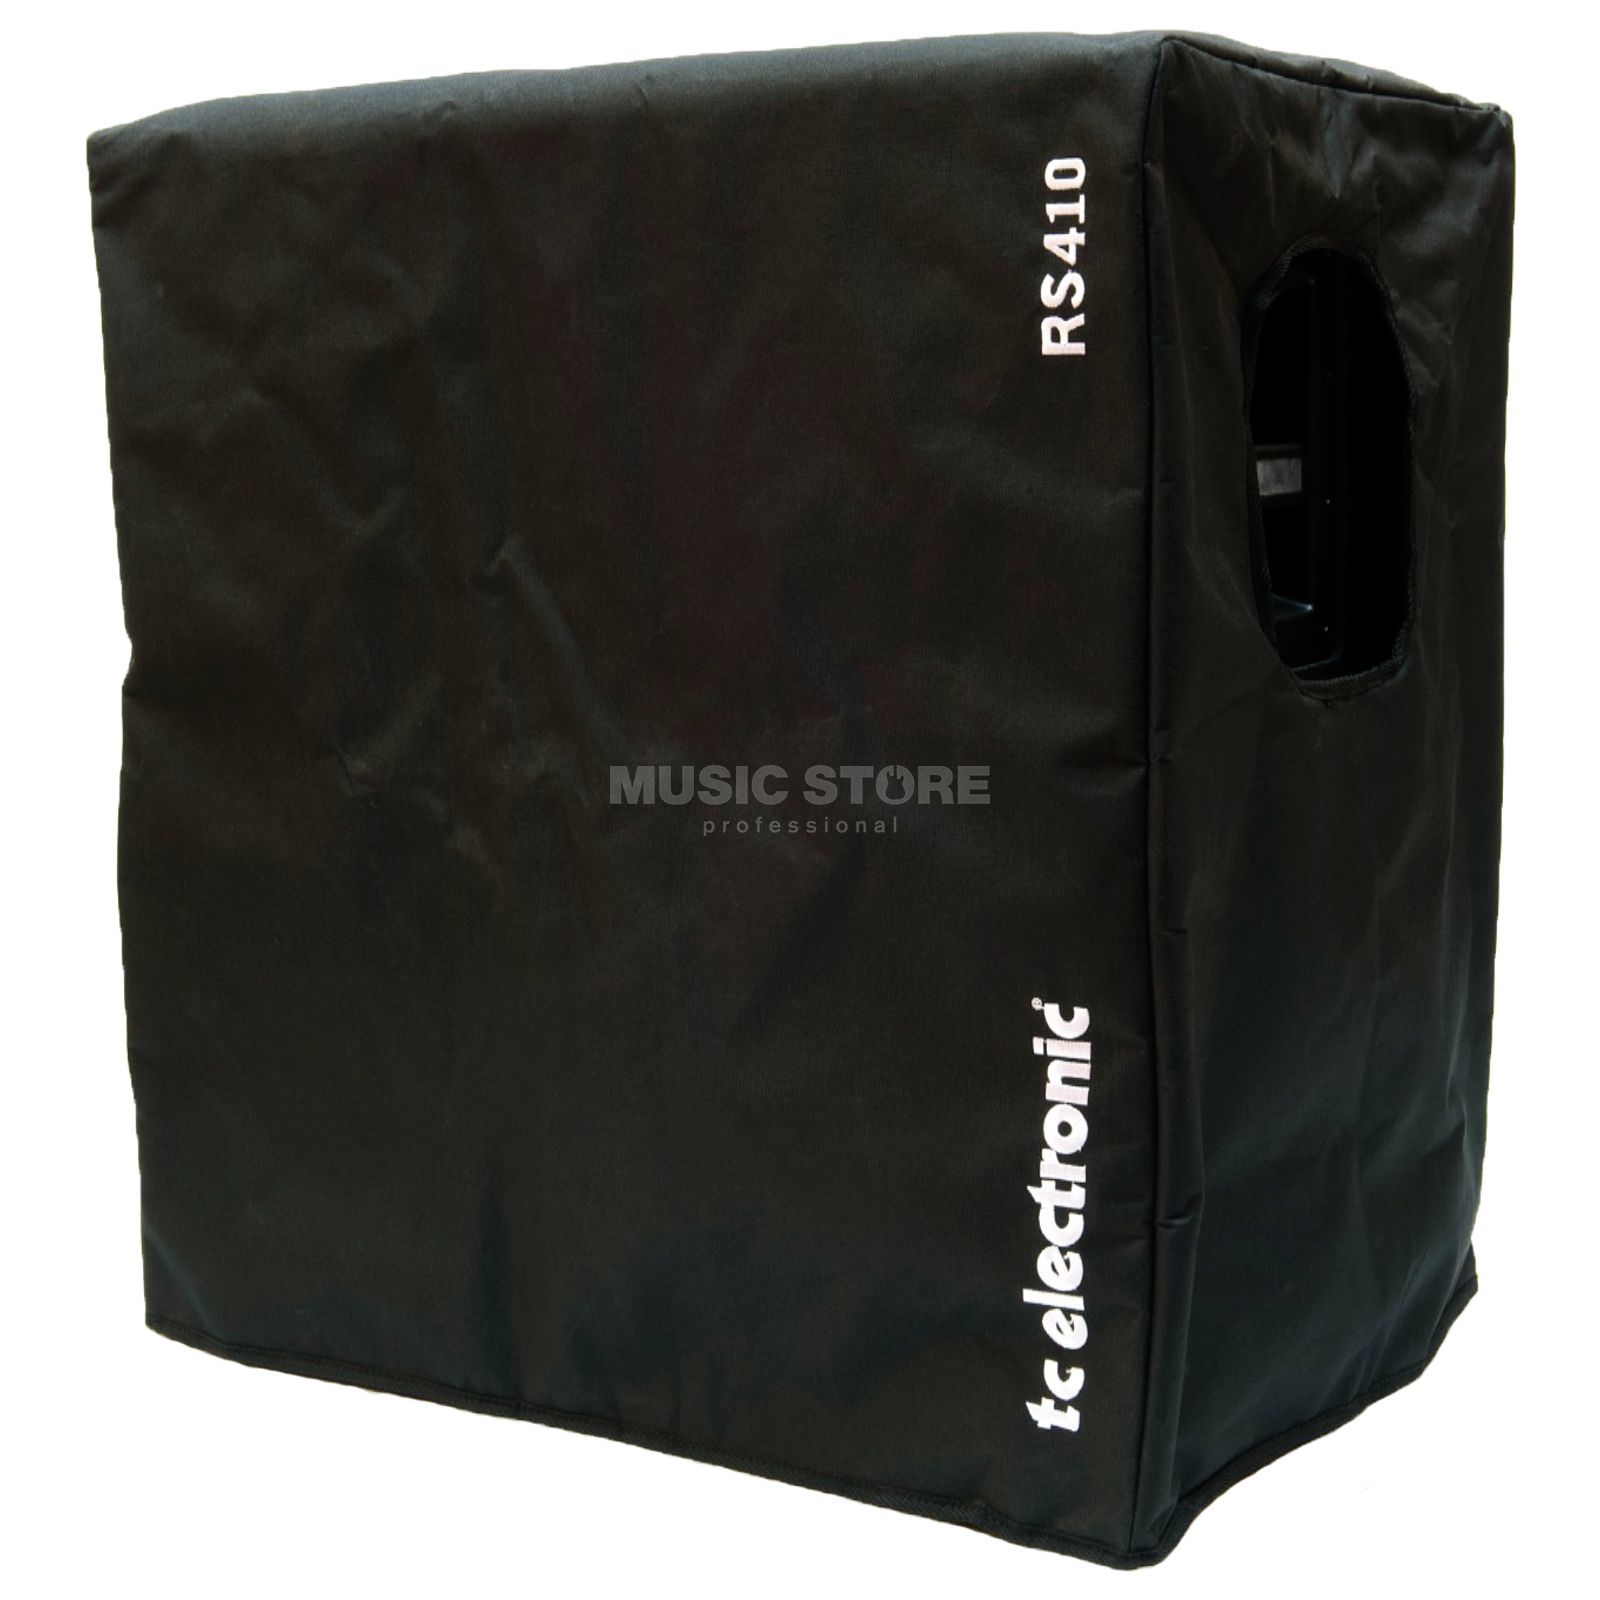 TC Electronic Soft Cover RS 410 Cab Produktbild